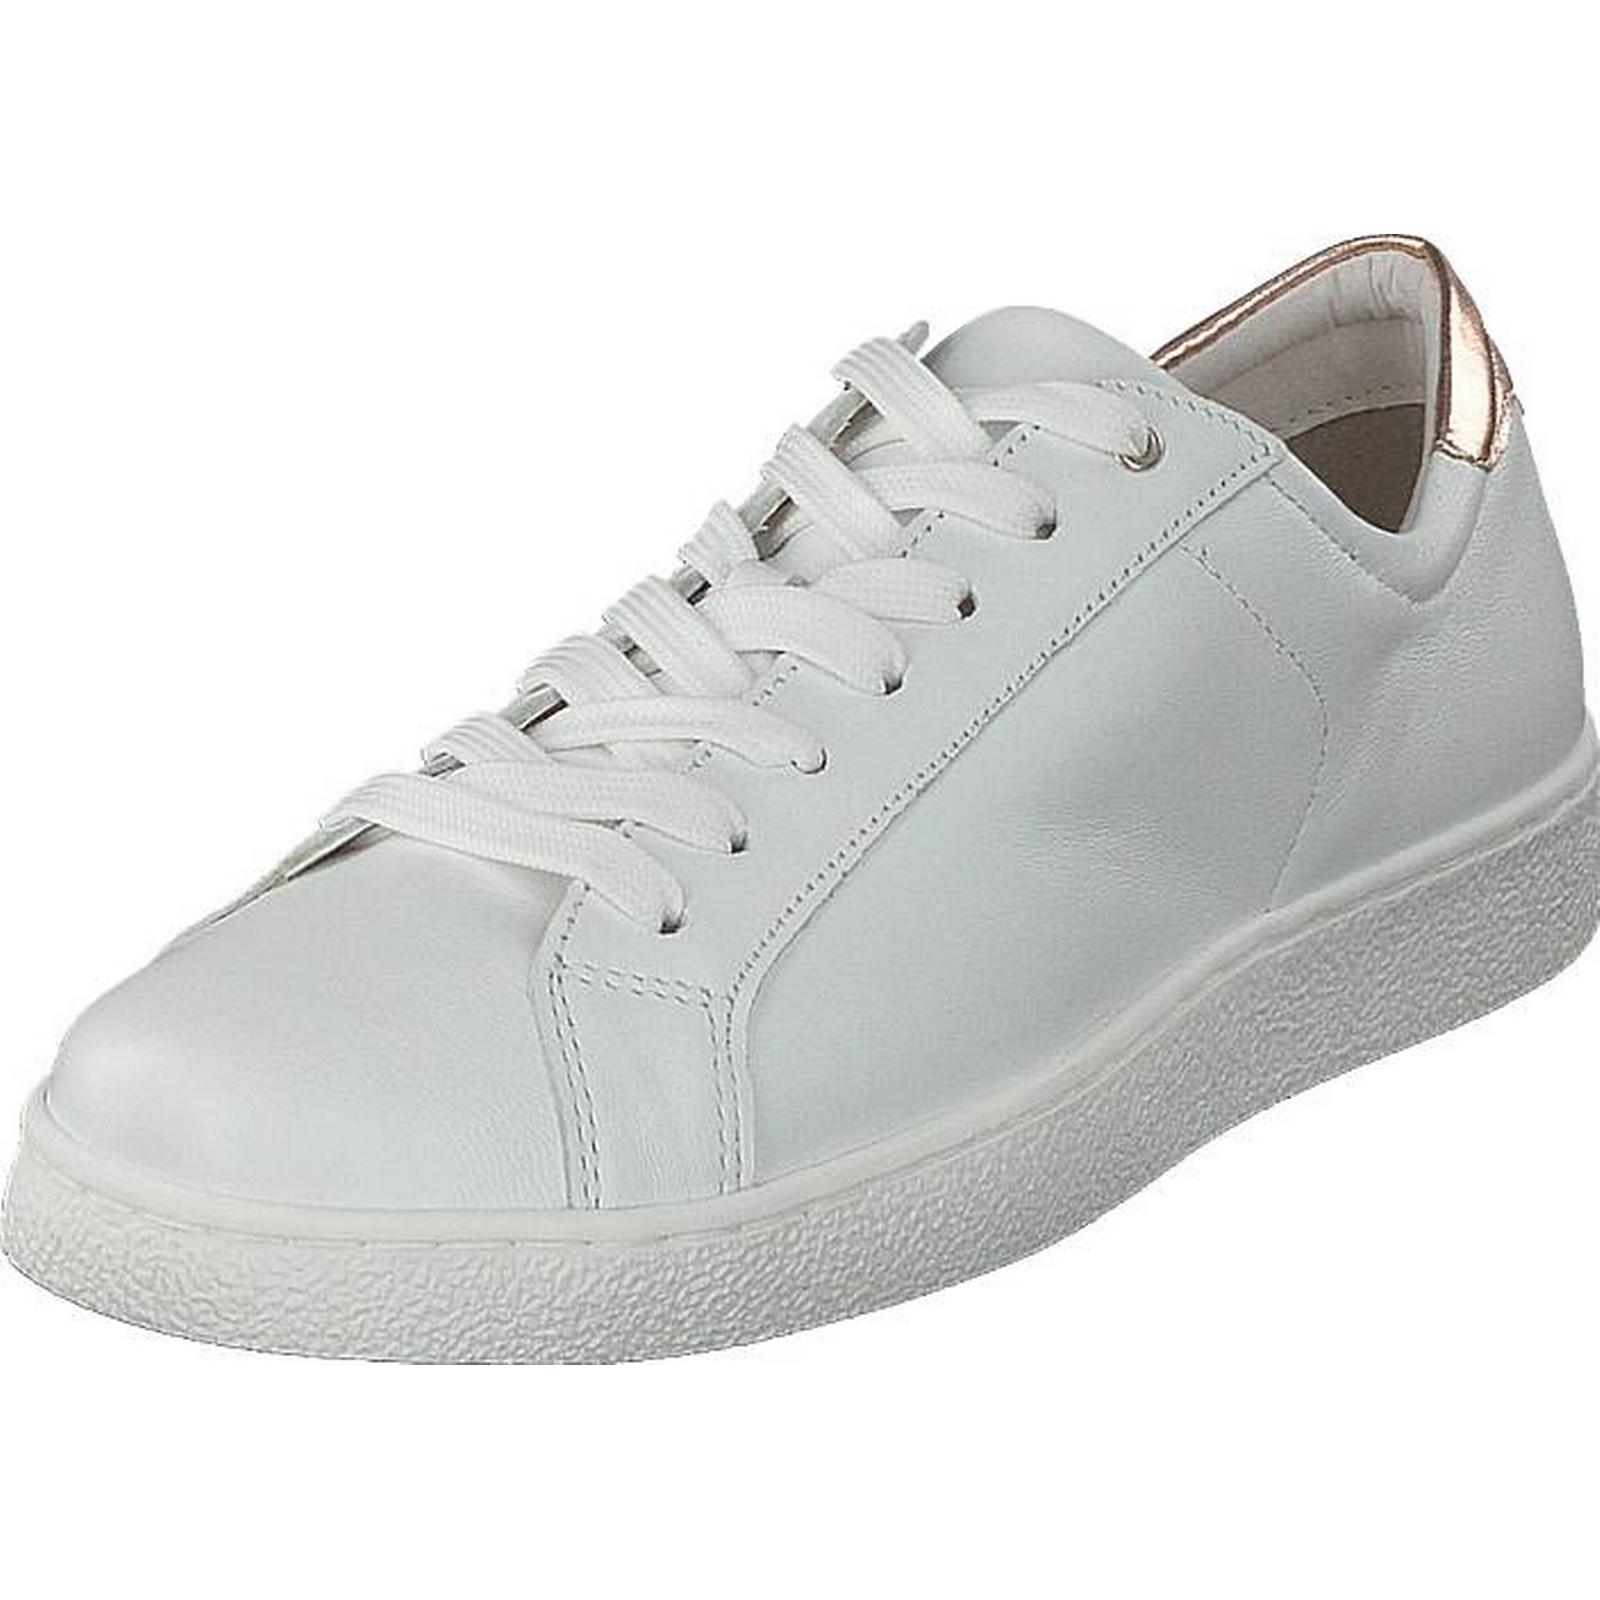 Tamaris 23631-154 Rose White Rose 23631-154 Metallic, Shoes, Trainers & Sport Shoes , Low-top Trainers, White, Female, 39 572d3b